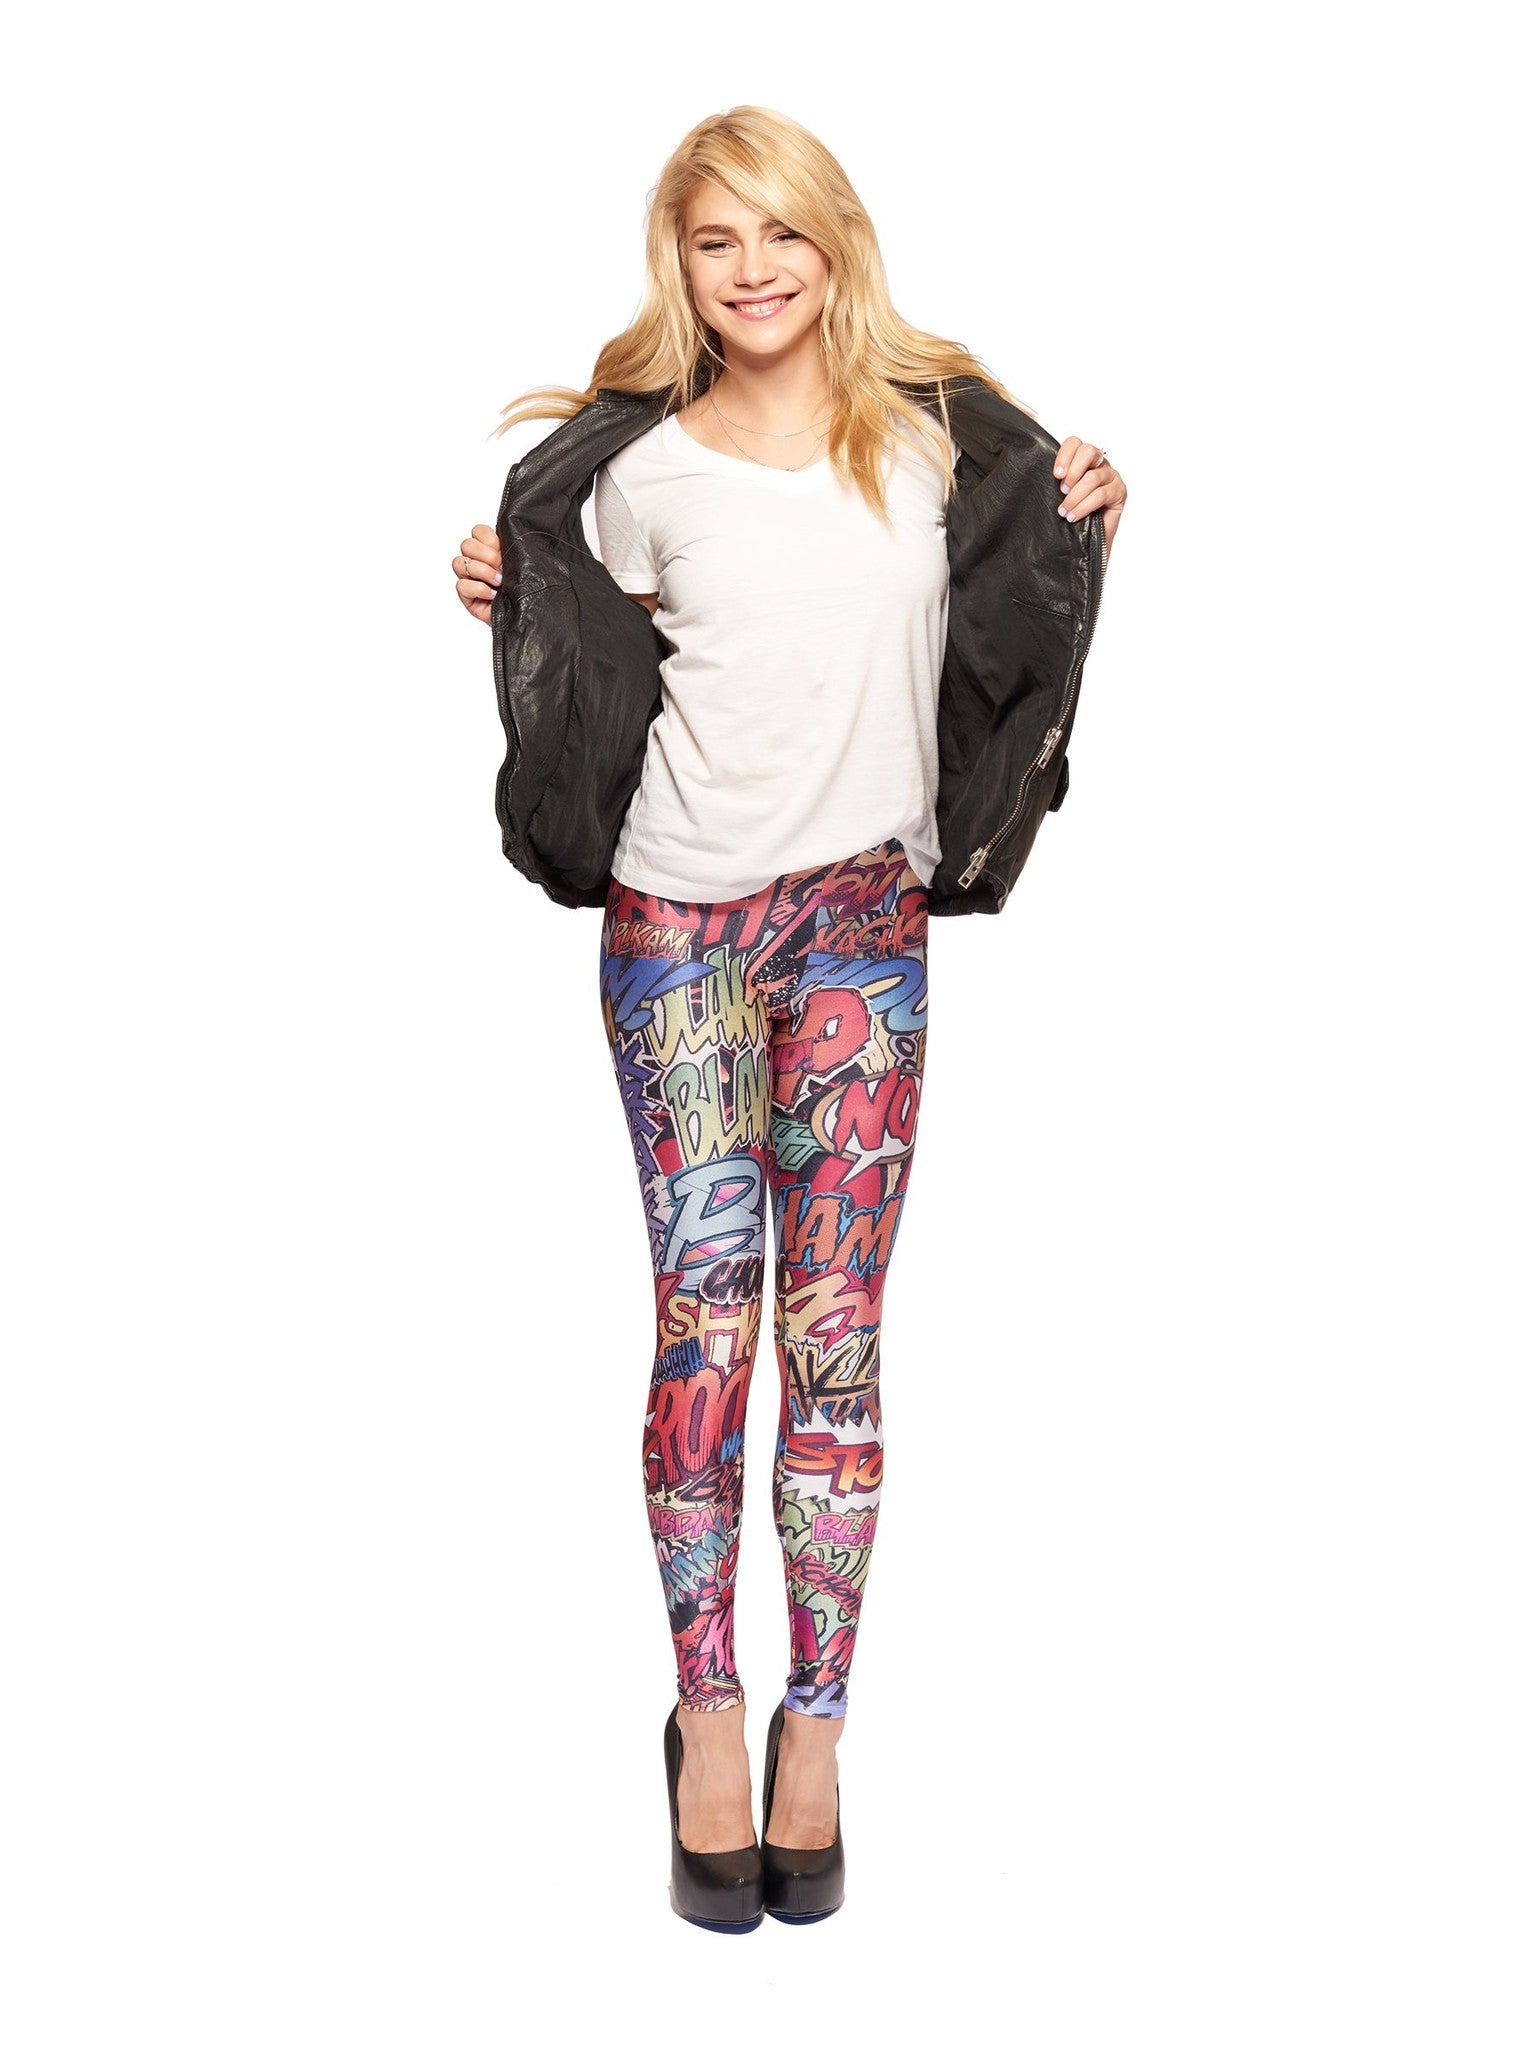 Action Packed Queen West Leggings - Nuvango  - 1